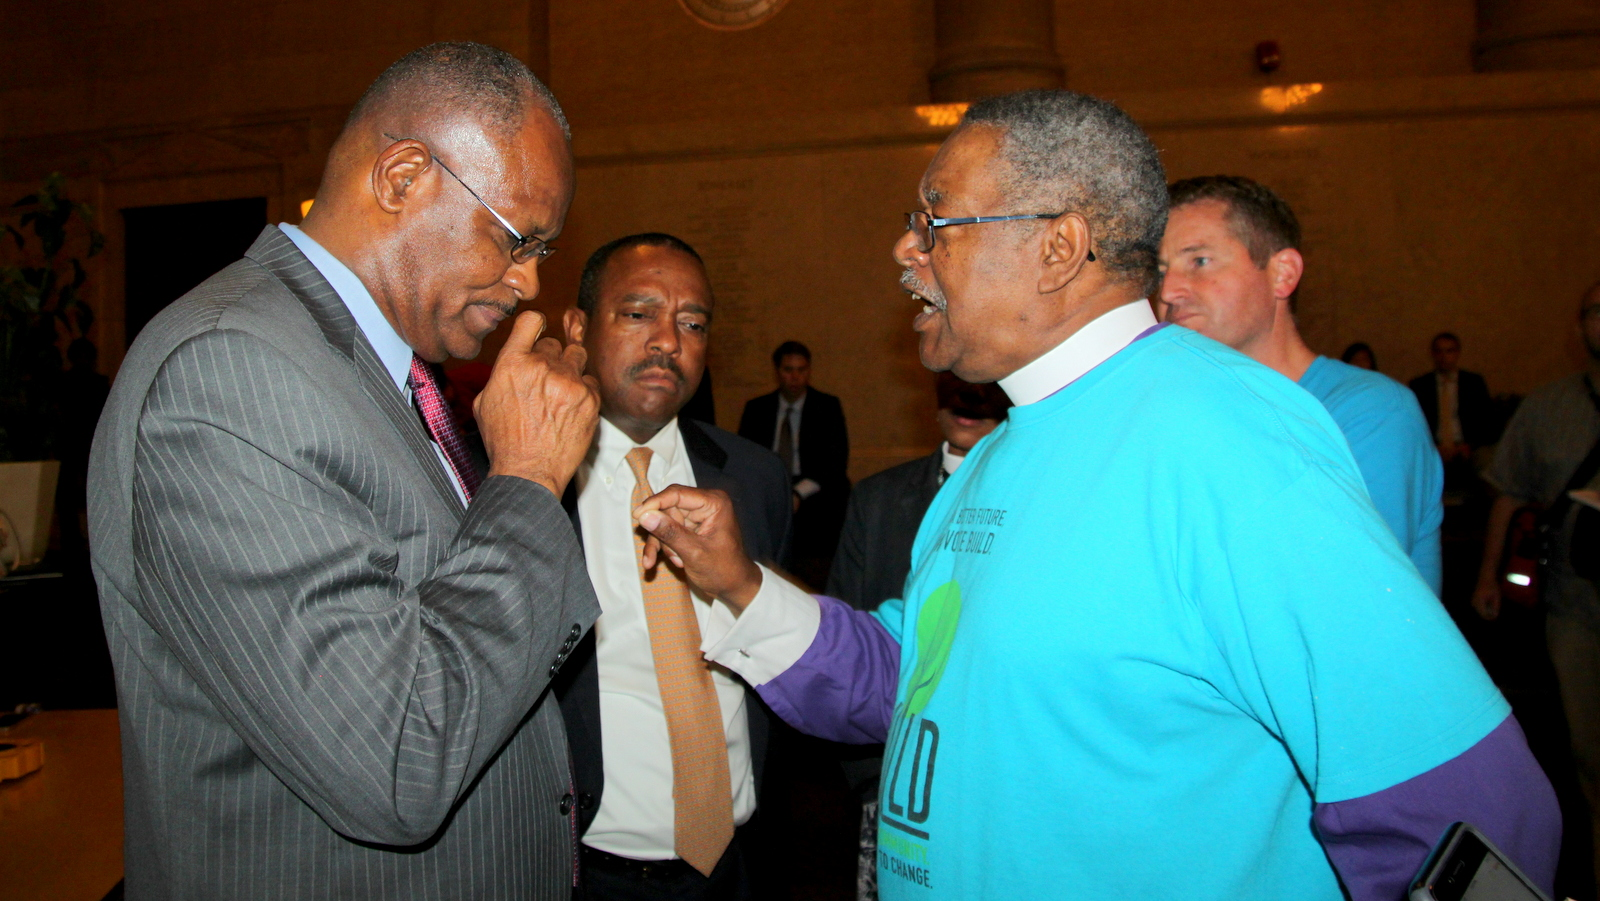 Bishop Douglas Miles of BUILD blasts Councilman Carl Stokes after Stokes abruptly recesses before the committee takes up the $660 million Port Covington TIF bond bill. (Fern Shen)